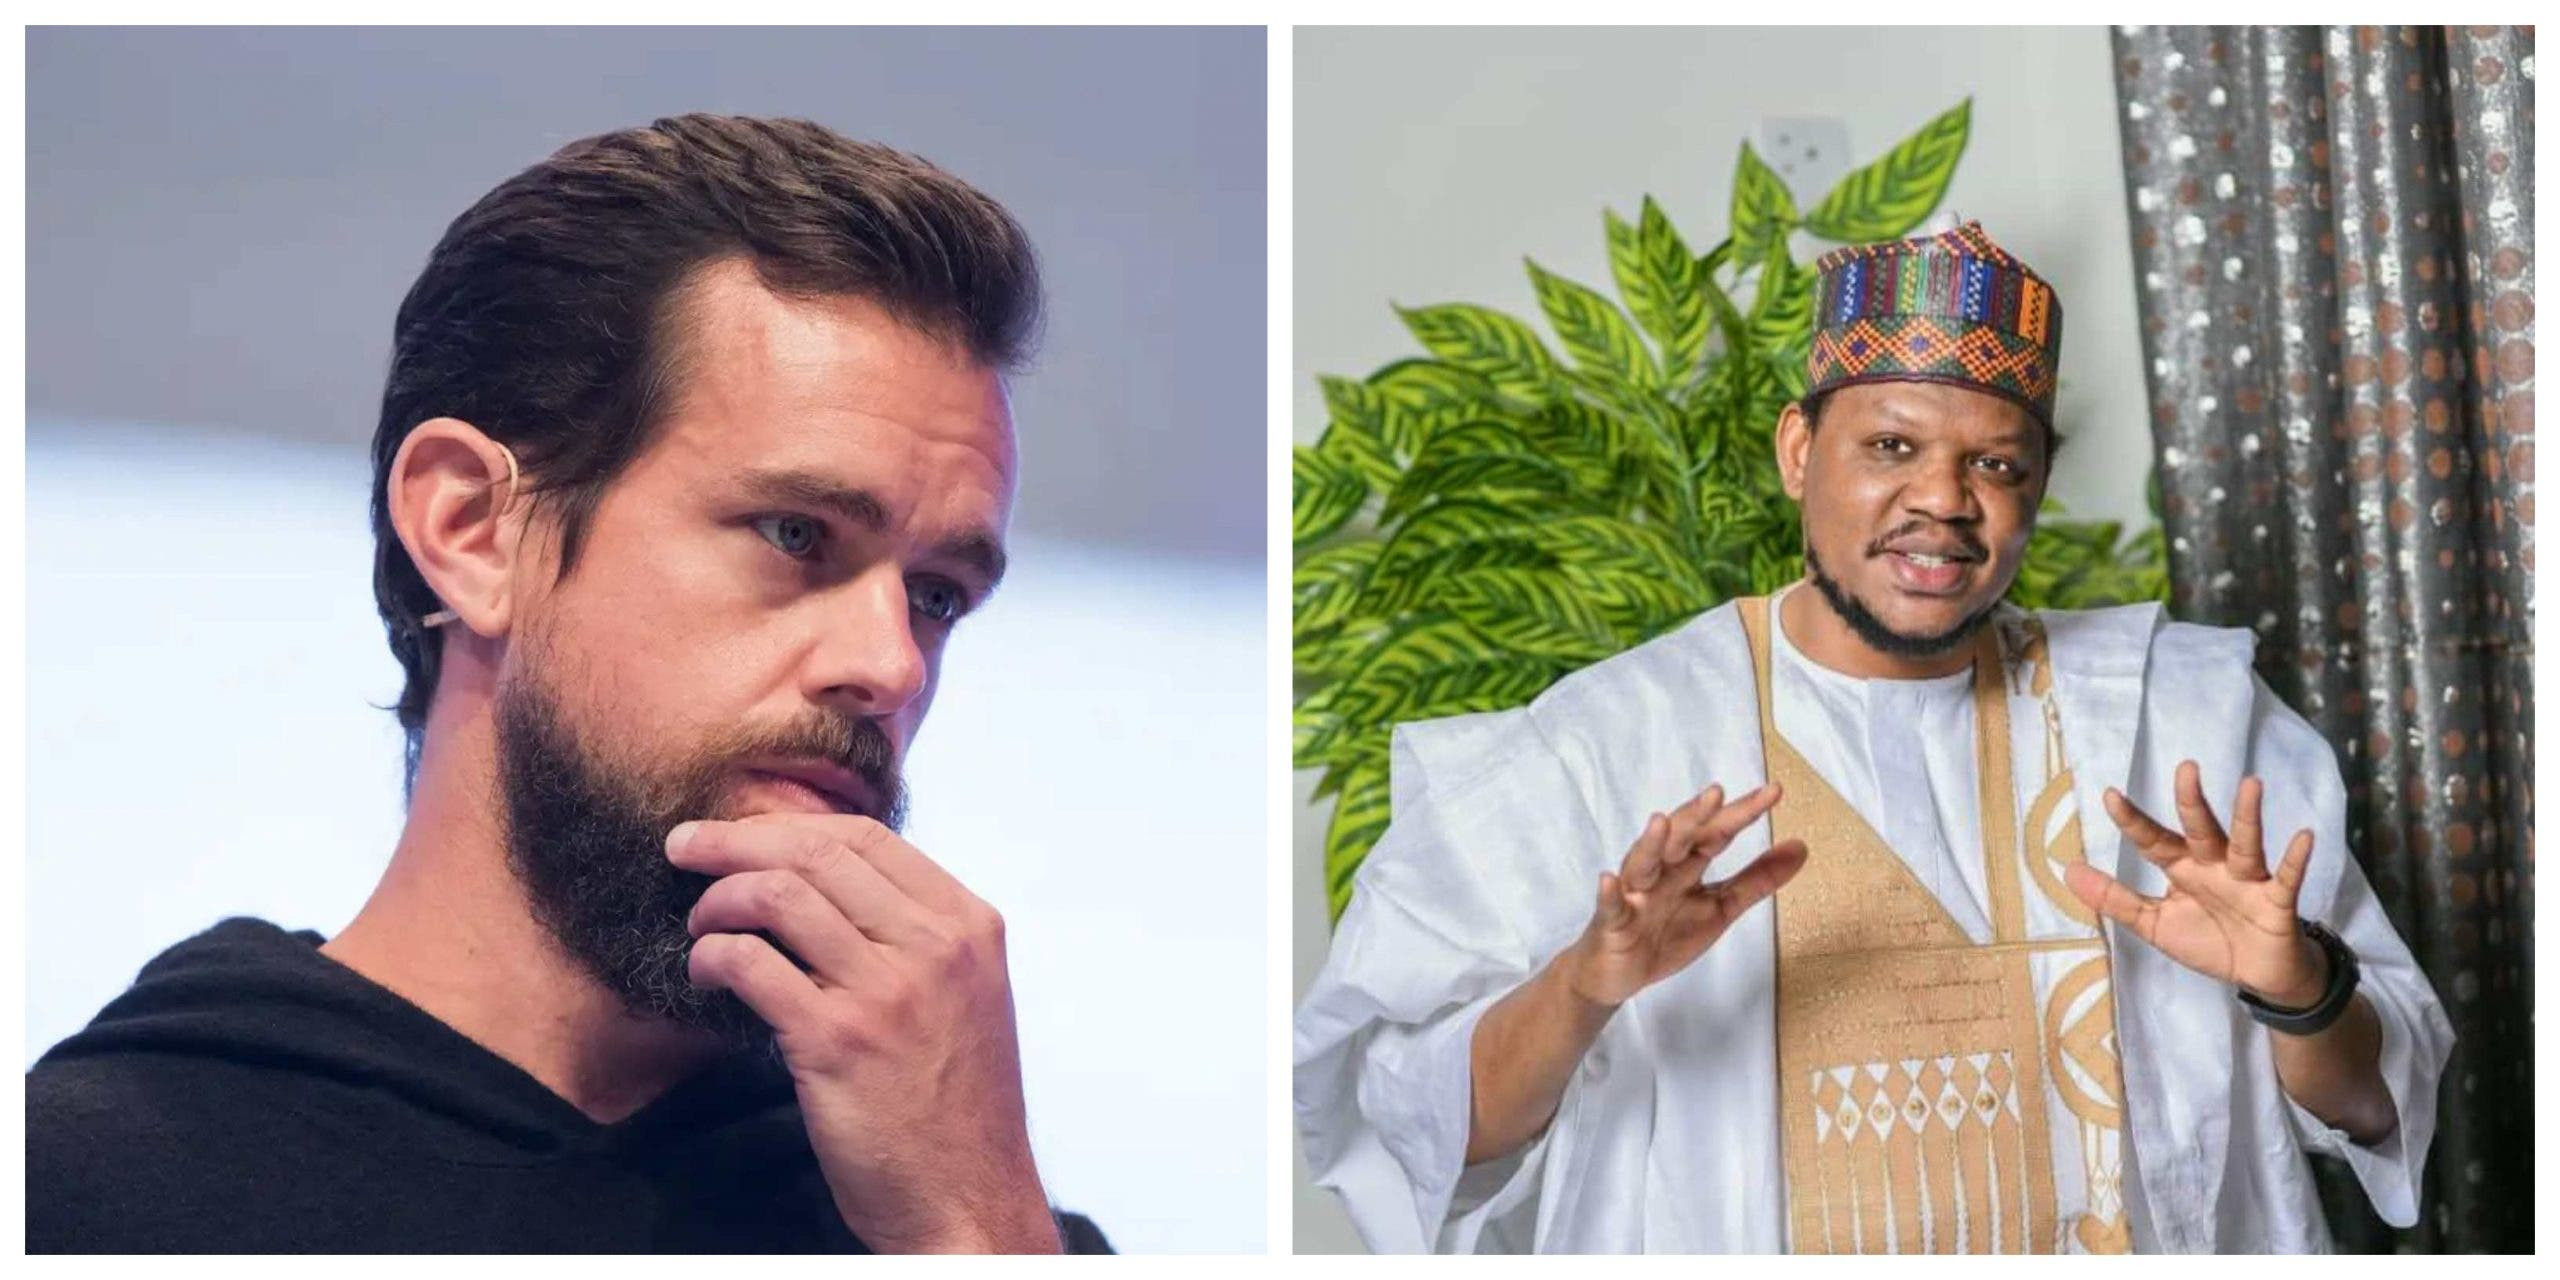 Case adjourned as Adamu Garba and his lawyers fail to appear in court for hearing in his $1bn suit against Twitter owner, Jack Dorsey